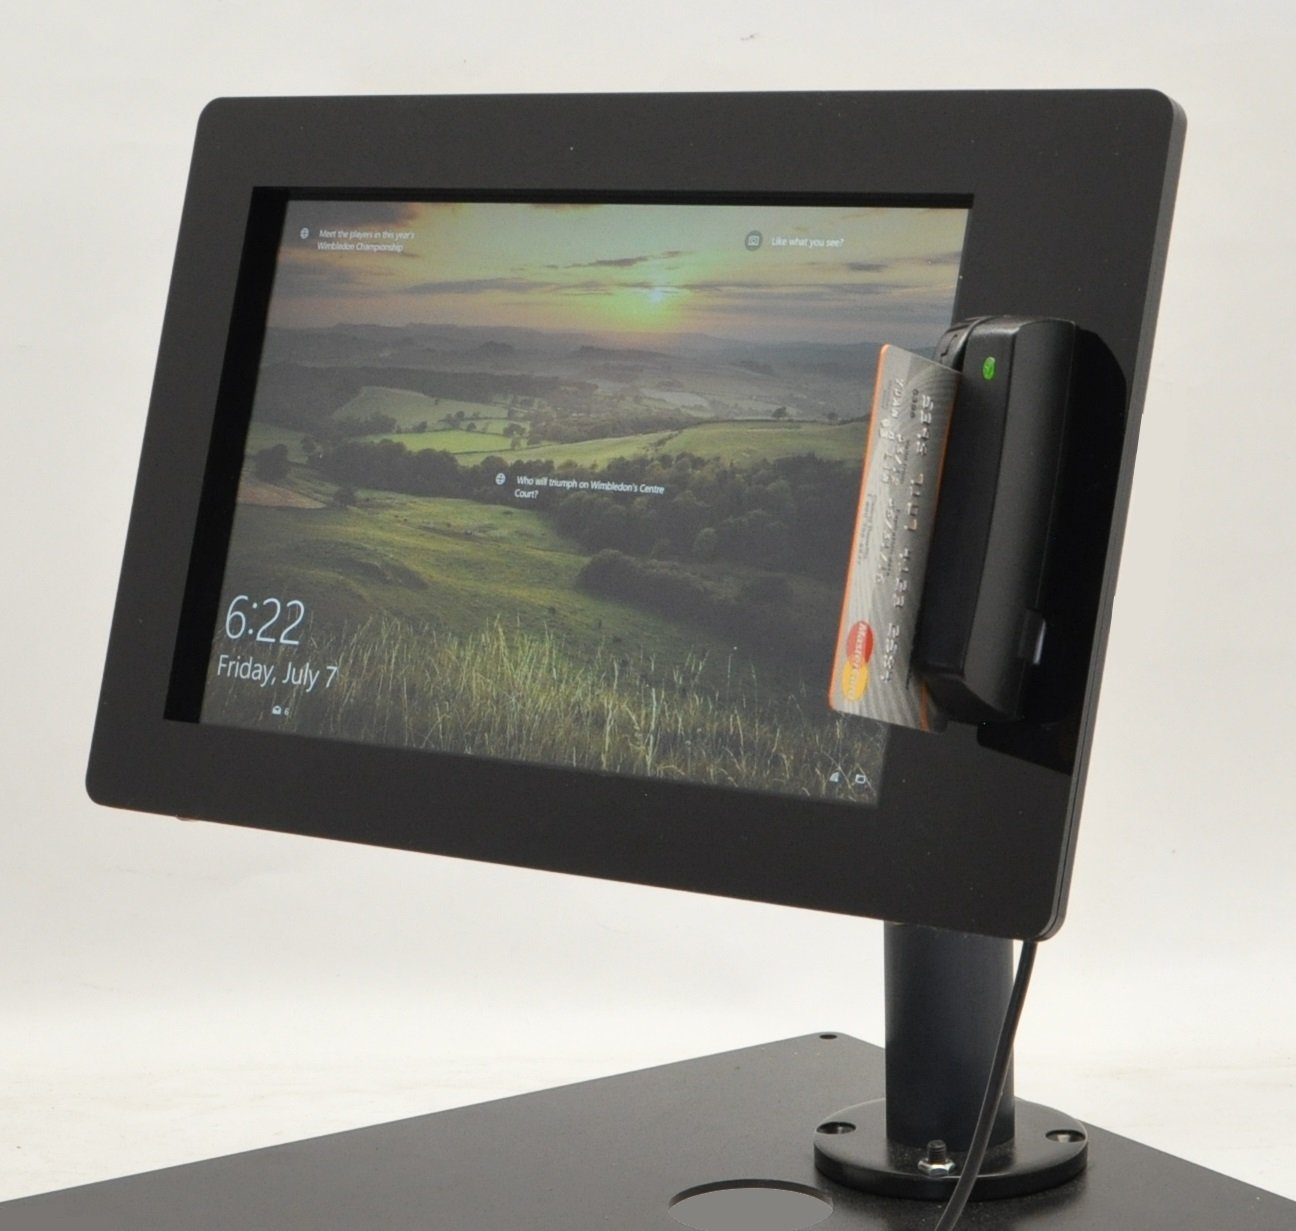 TABcare POS Kiosk Kit for Windows based Tablet with USB Swipe Card Reader Mount supports Magtek Dynamag (Pole Stand, Dell Venue 11 Pro)